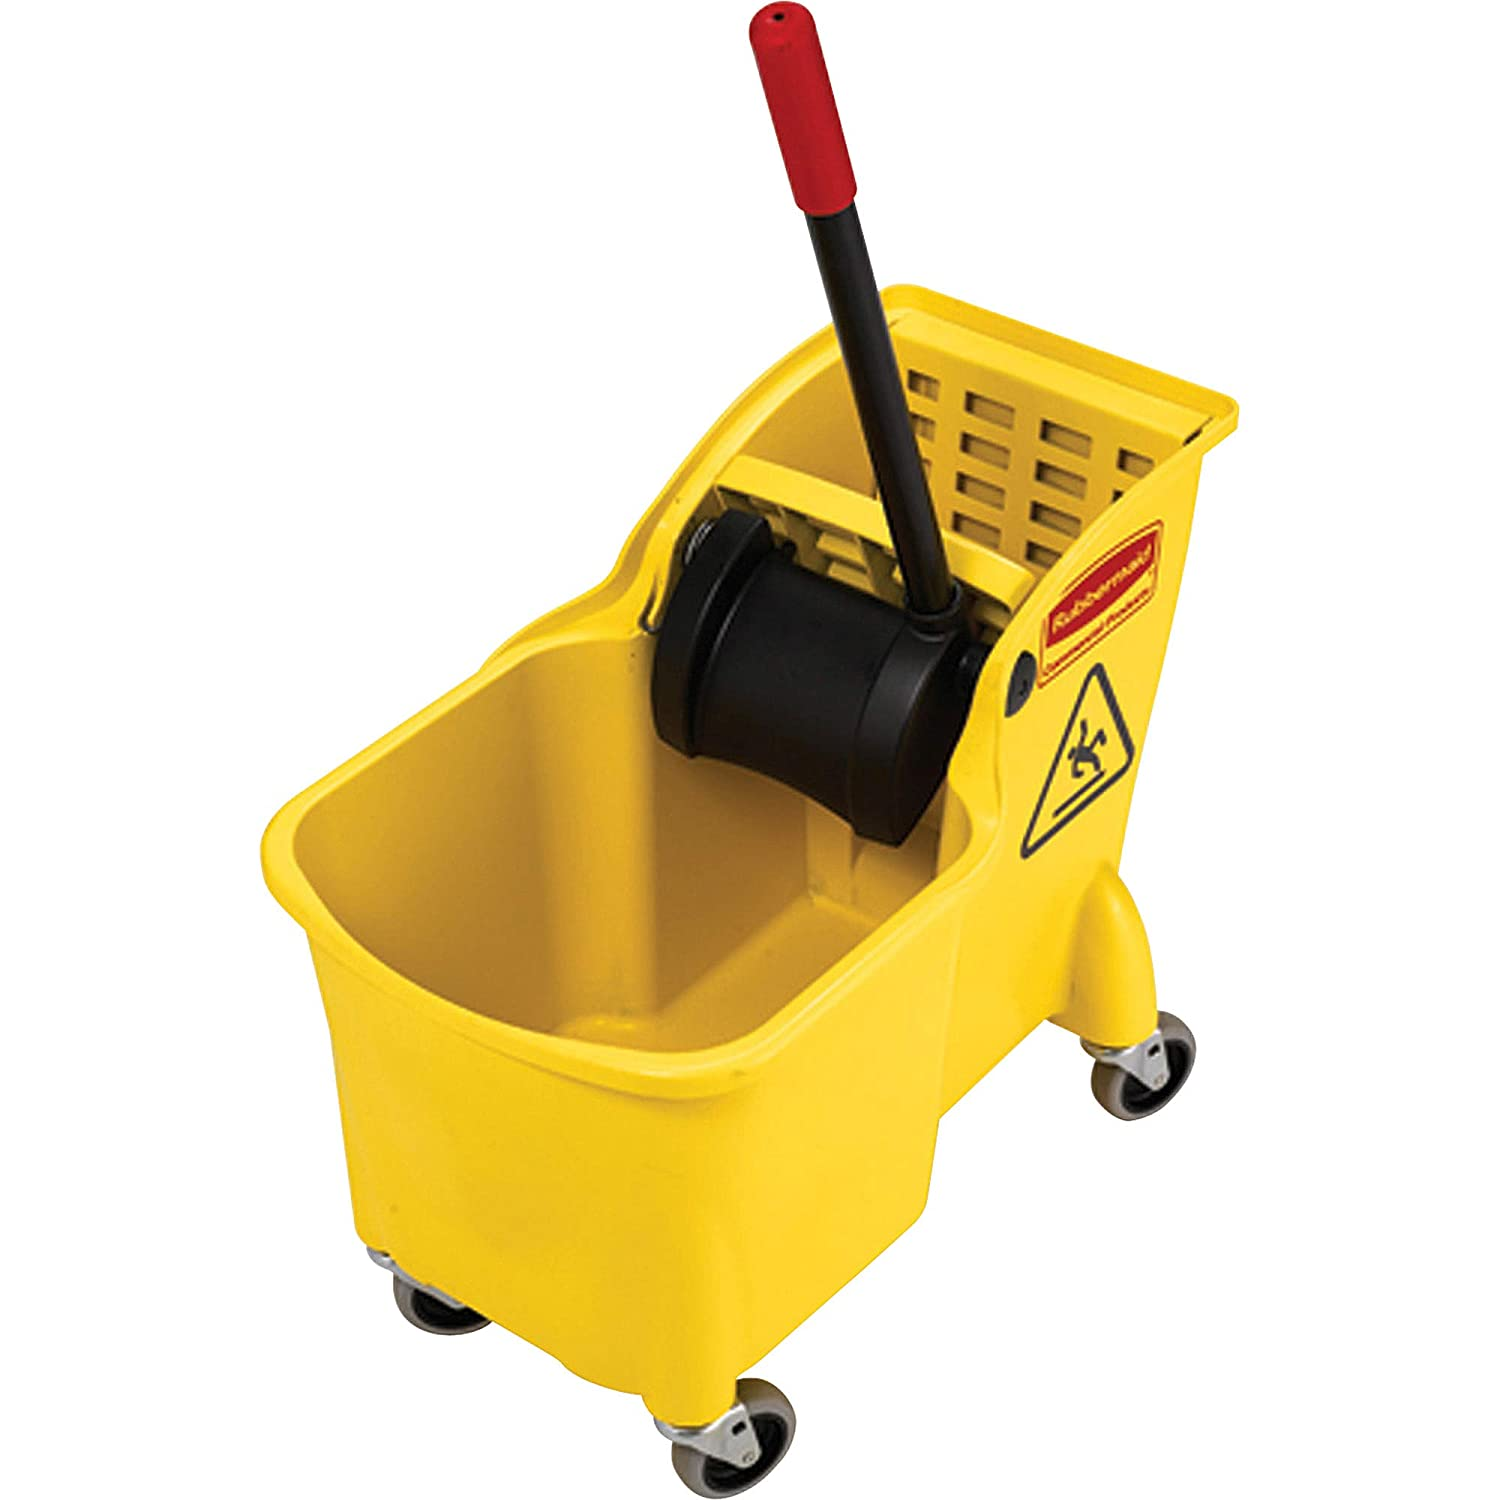 Rubbermaid Commercial 31 Qt. All-in-one Tandem Mopping Bucket: Industrial & Scientific